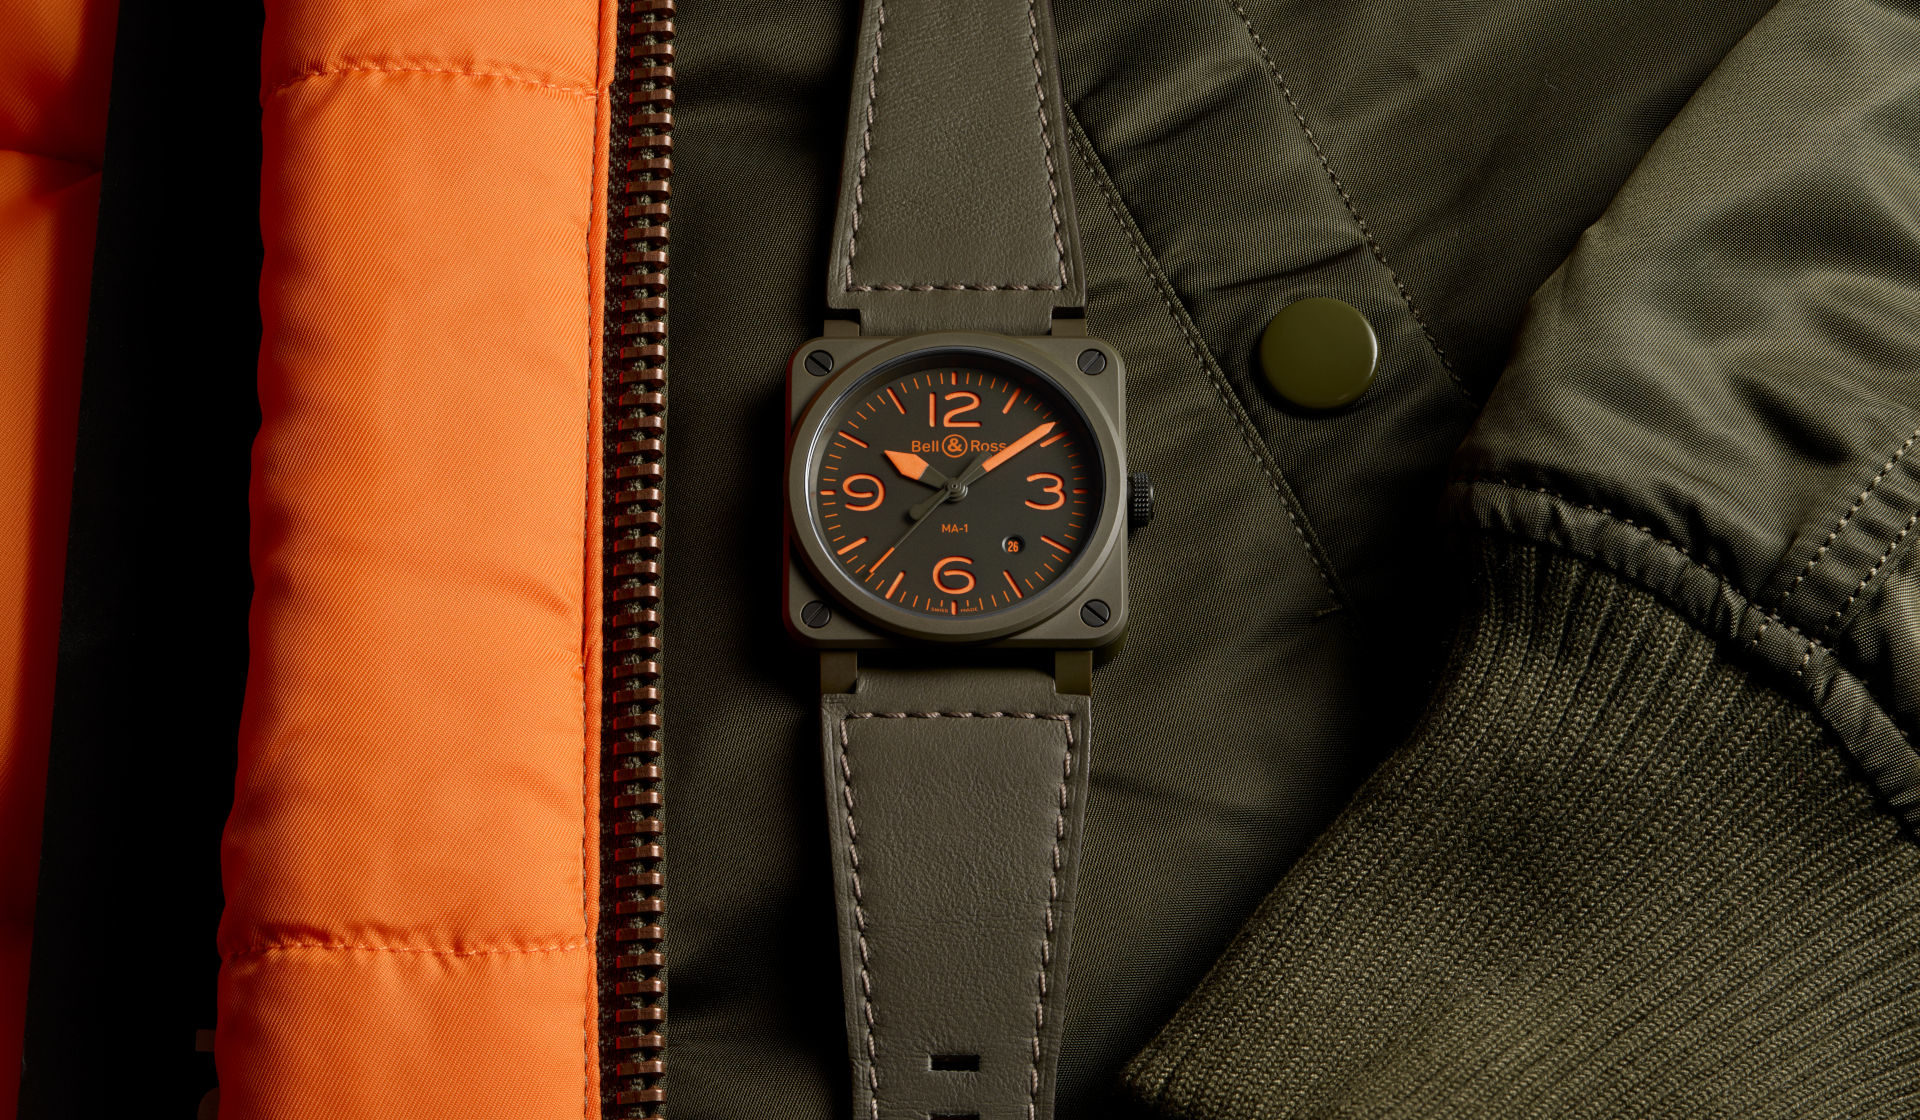 Inspired by the iconic bomber jacket, the new Bell & Ross BR03-92 MA-1 takes flight